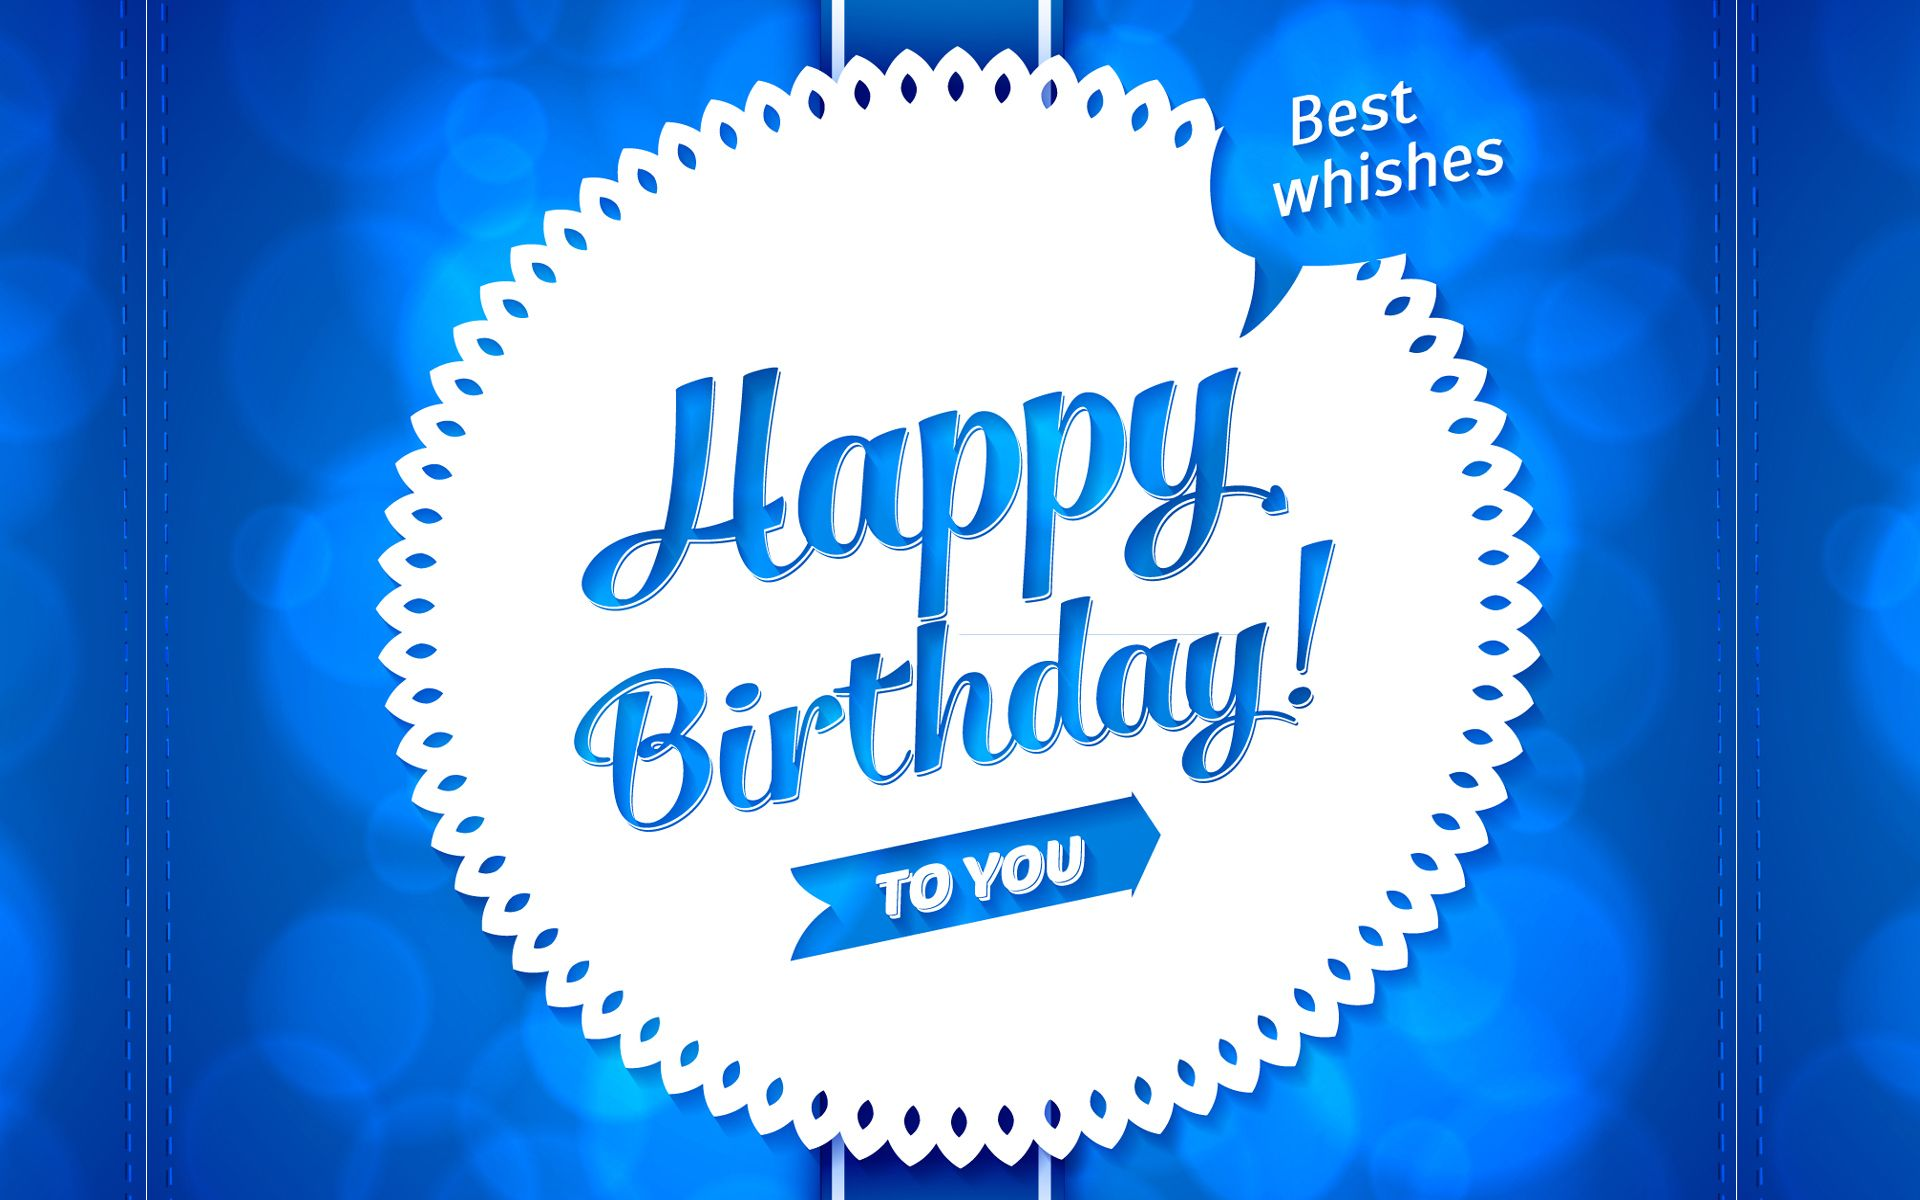 Phish Hd Wallpaper Best Wishes For Birthday Celebration Greetings Download